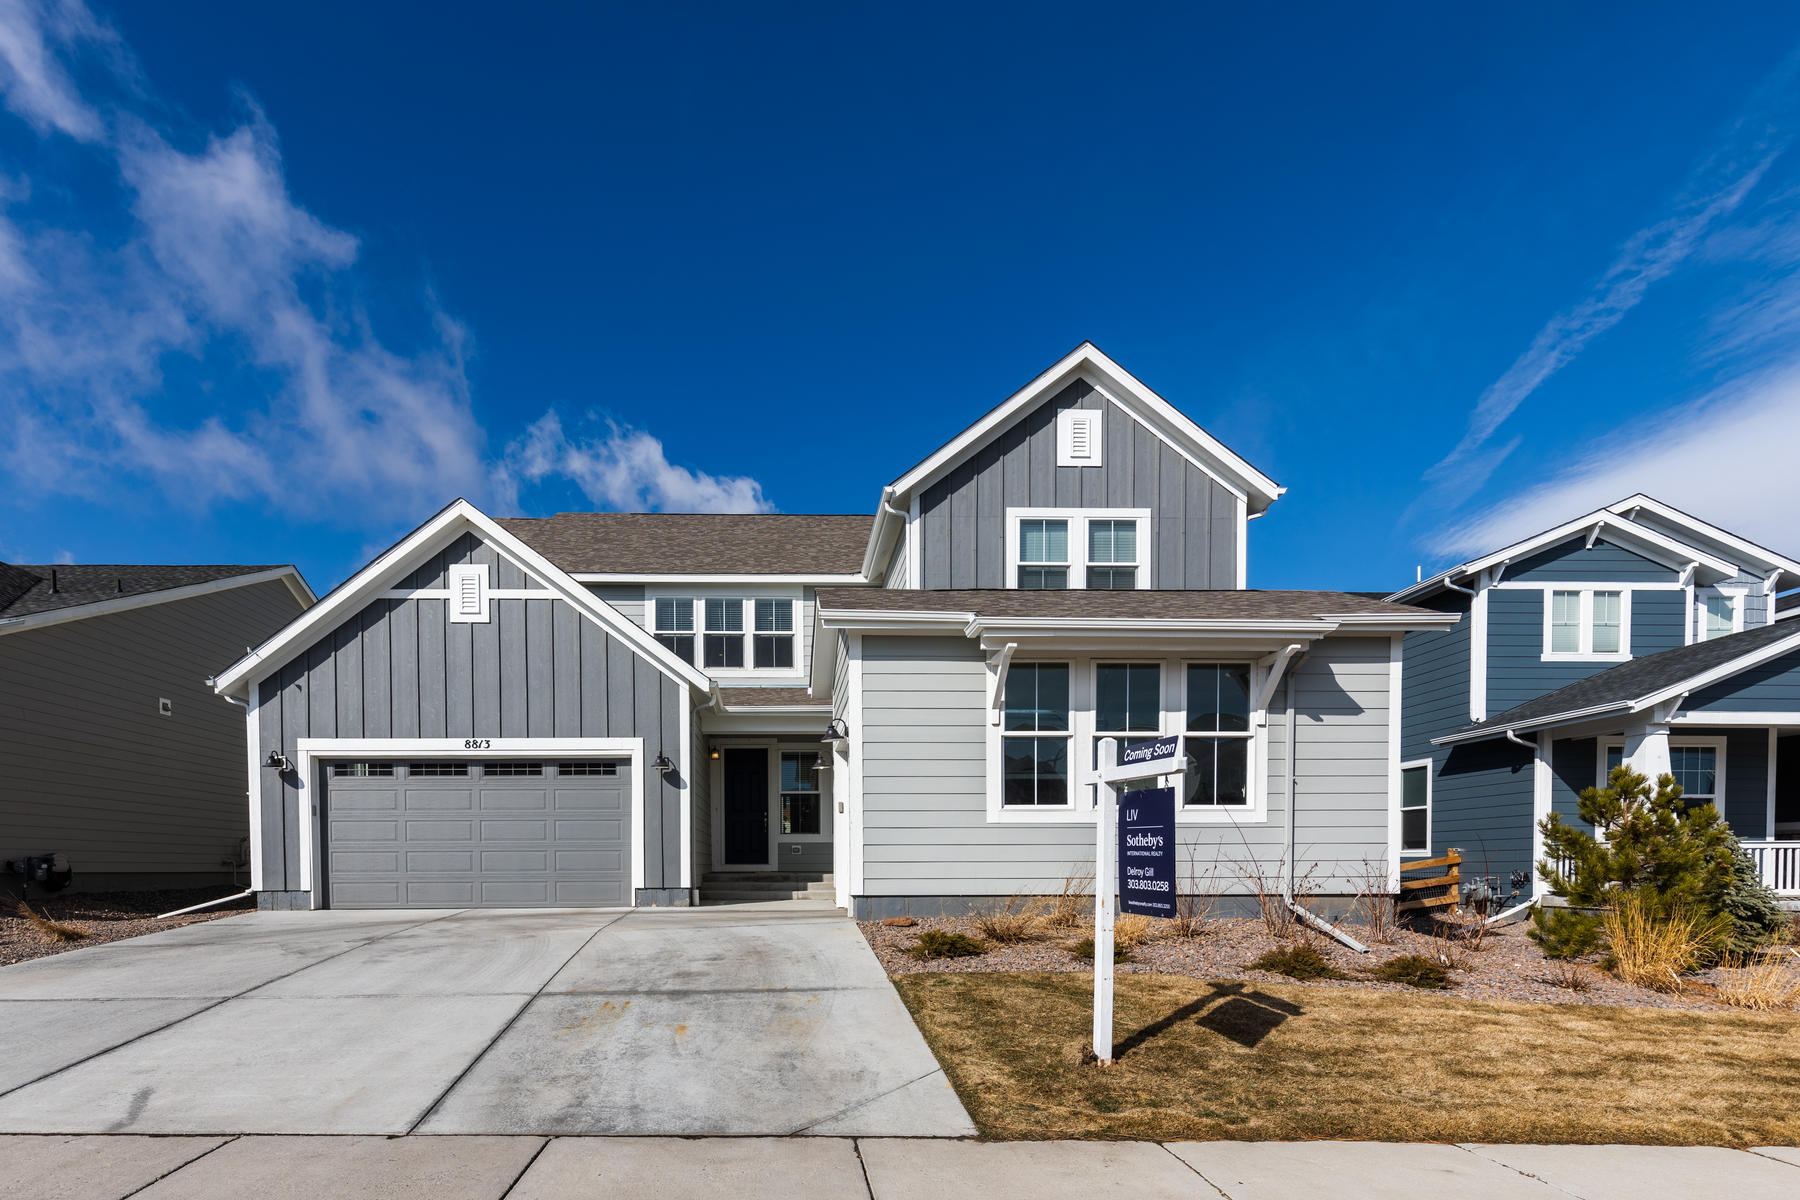 Single Family Homes for Active at Find your escape in Leyden Rock! 8813 Dunraven Street Arvada, Colorado 80007 United States